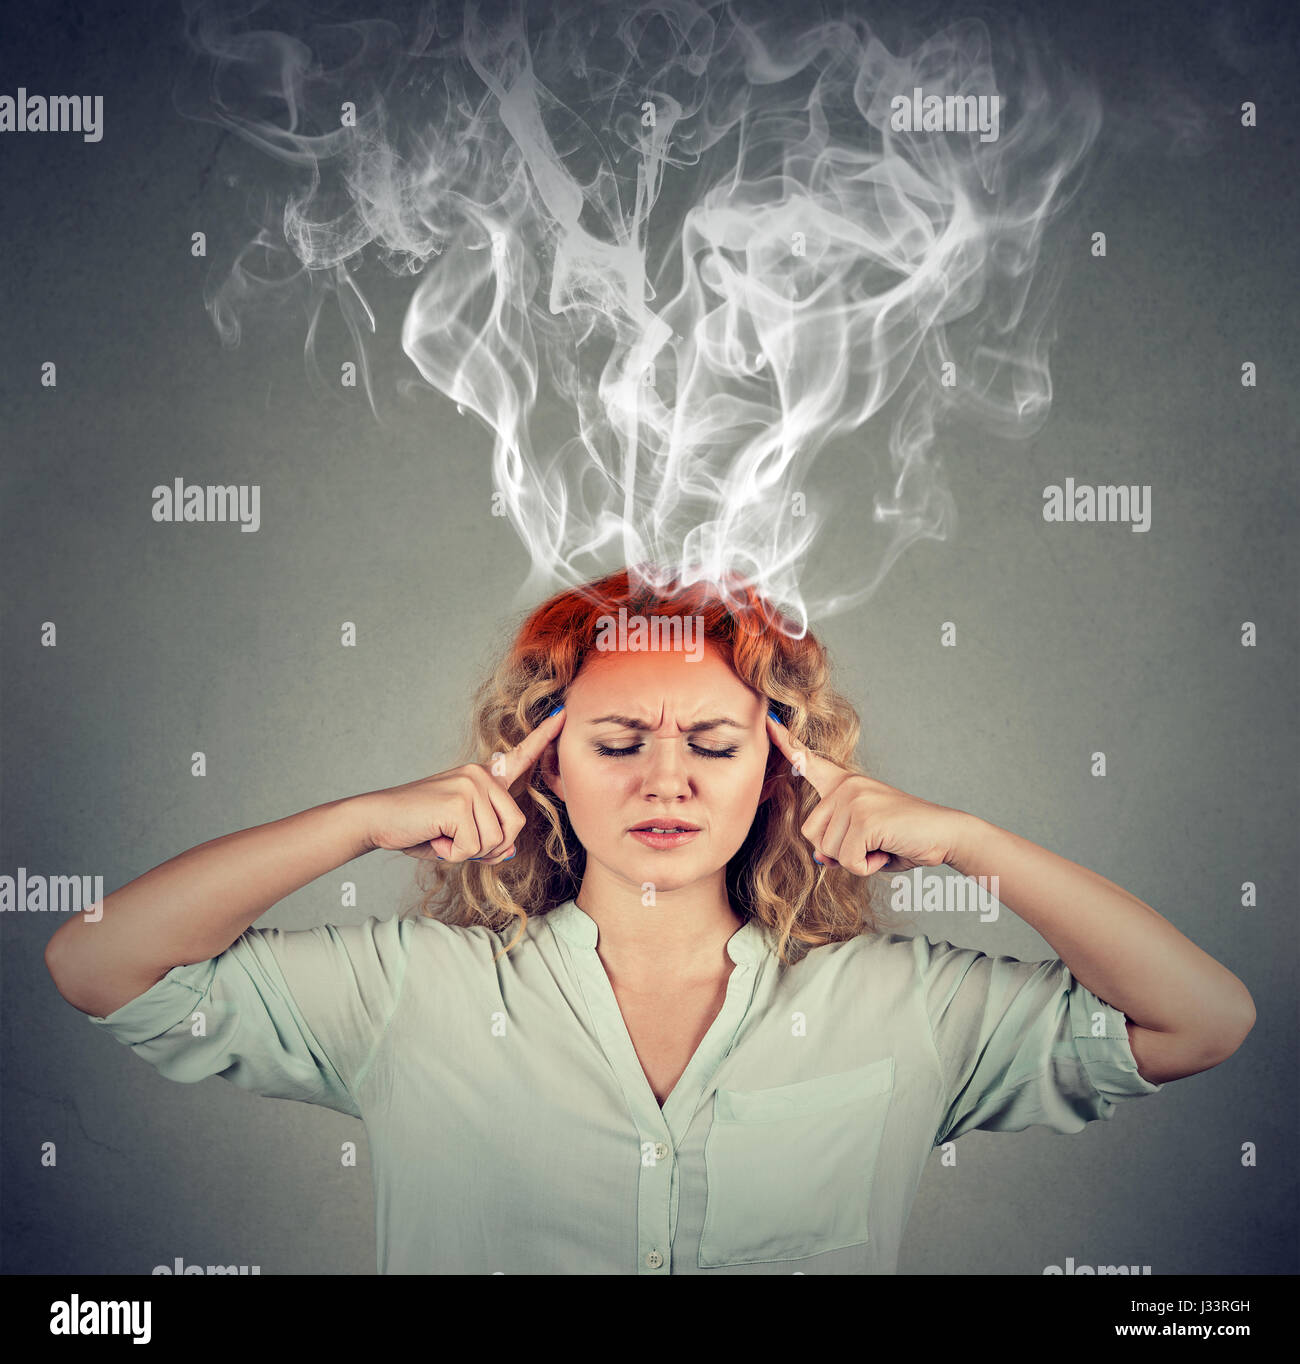 Woman thinks very intensely having headache isolated on gray wall background - Stock Image